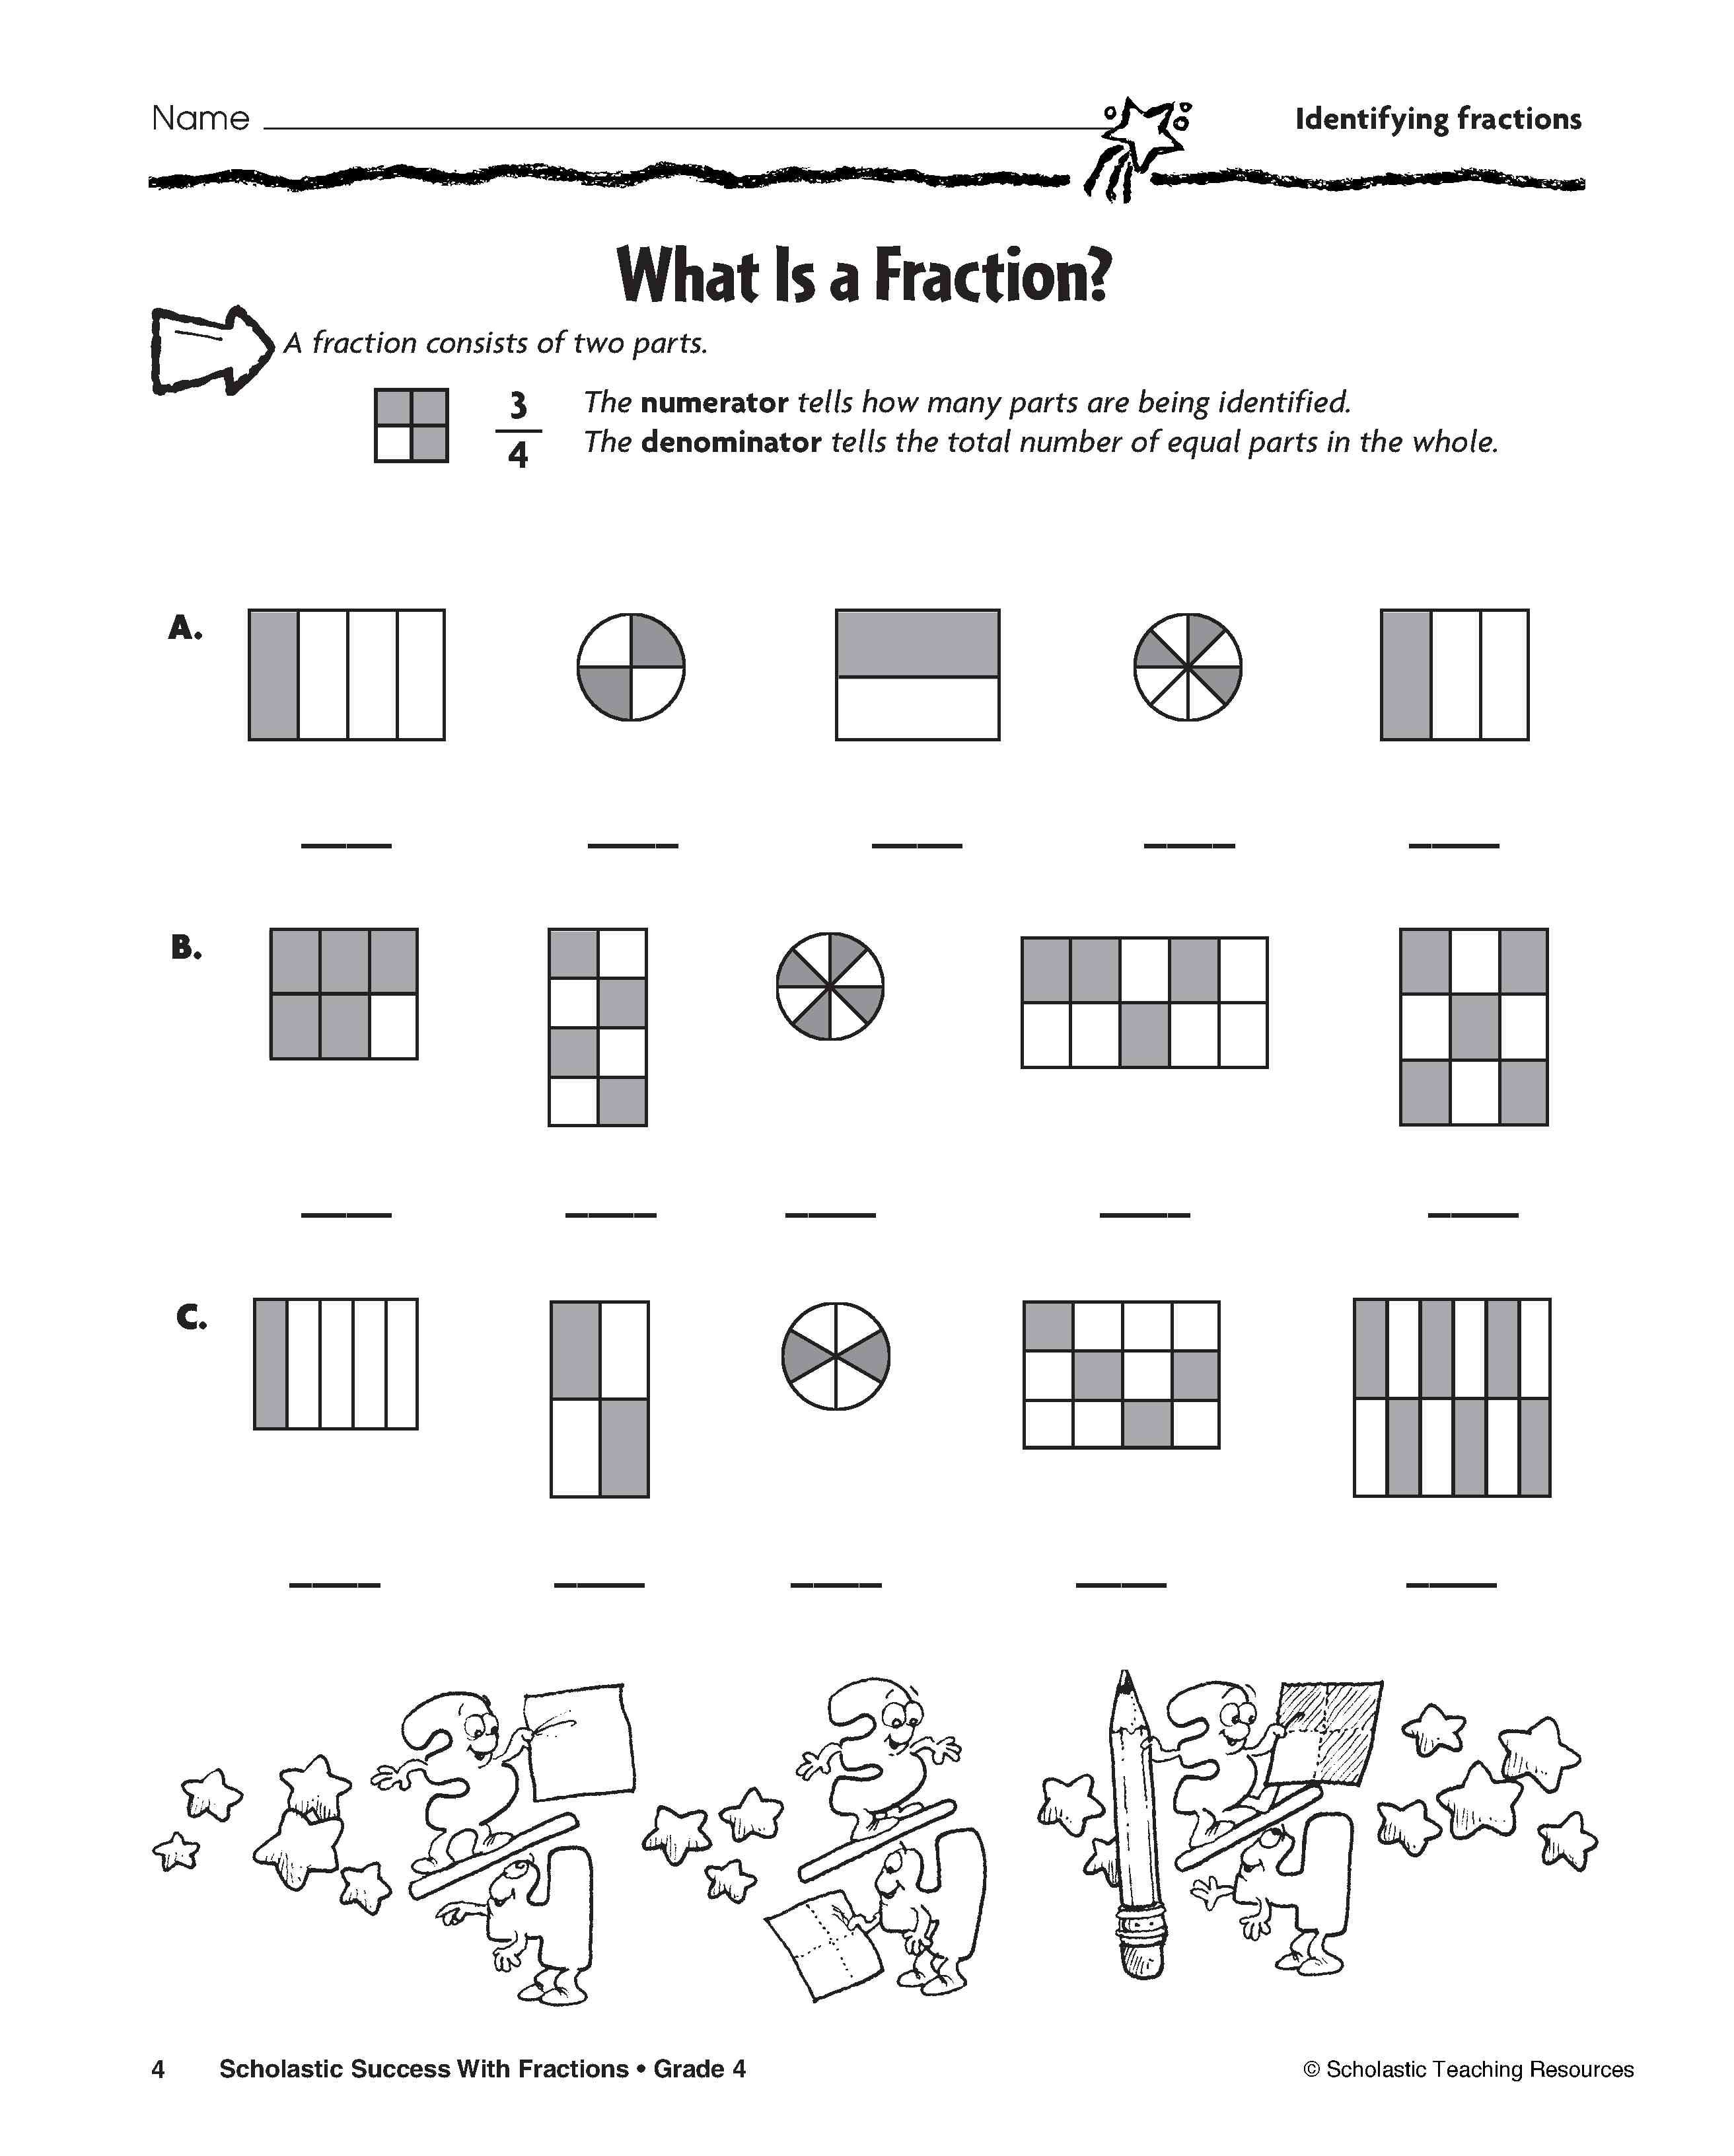 Critical Thinking Activities For Fast Finishers And Beyond